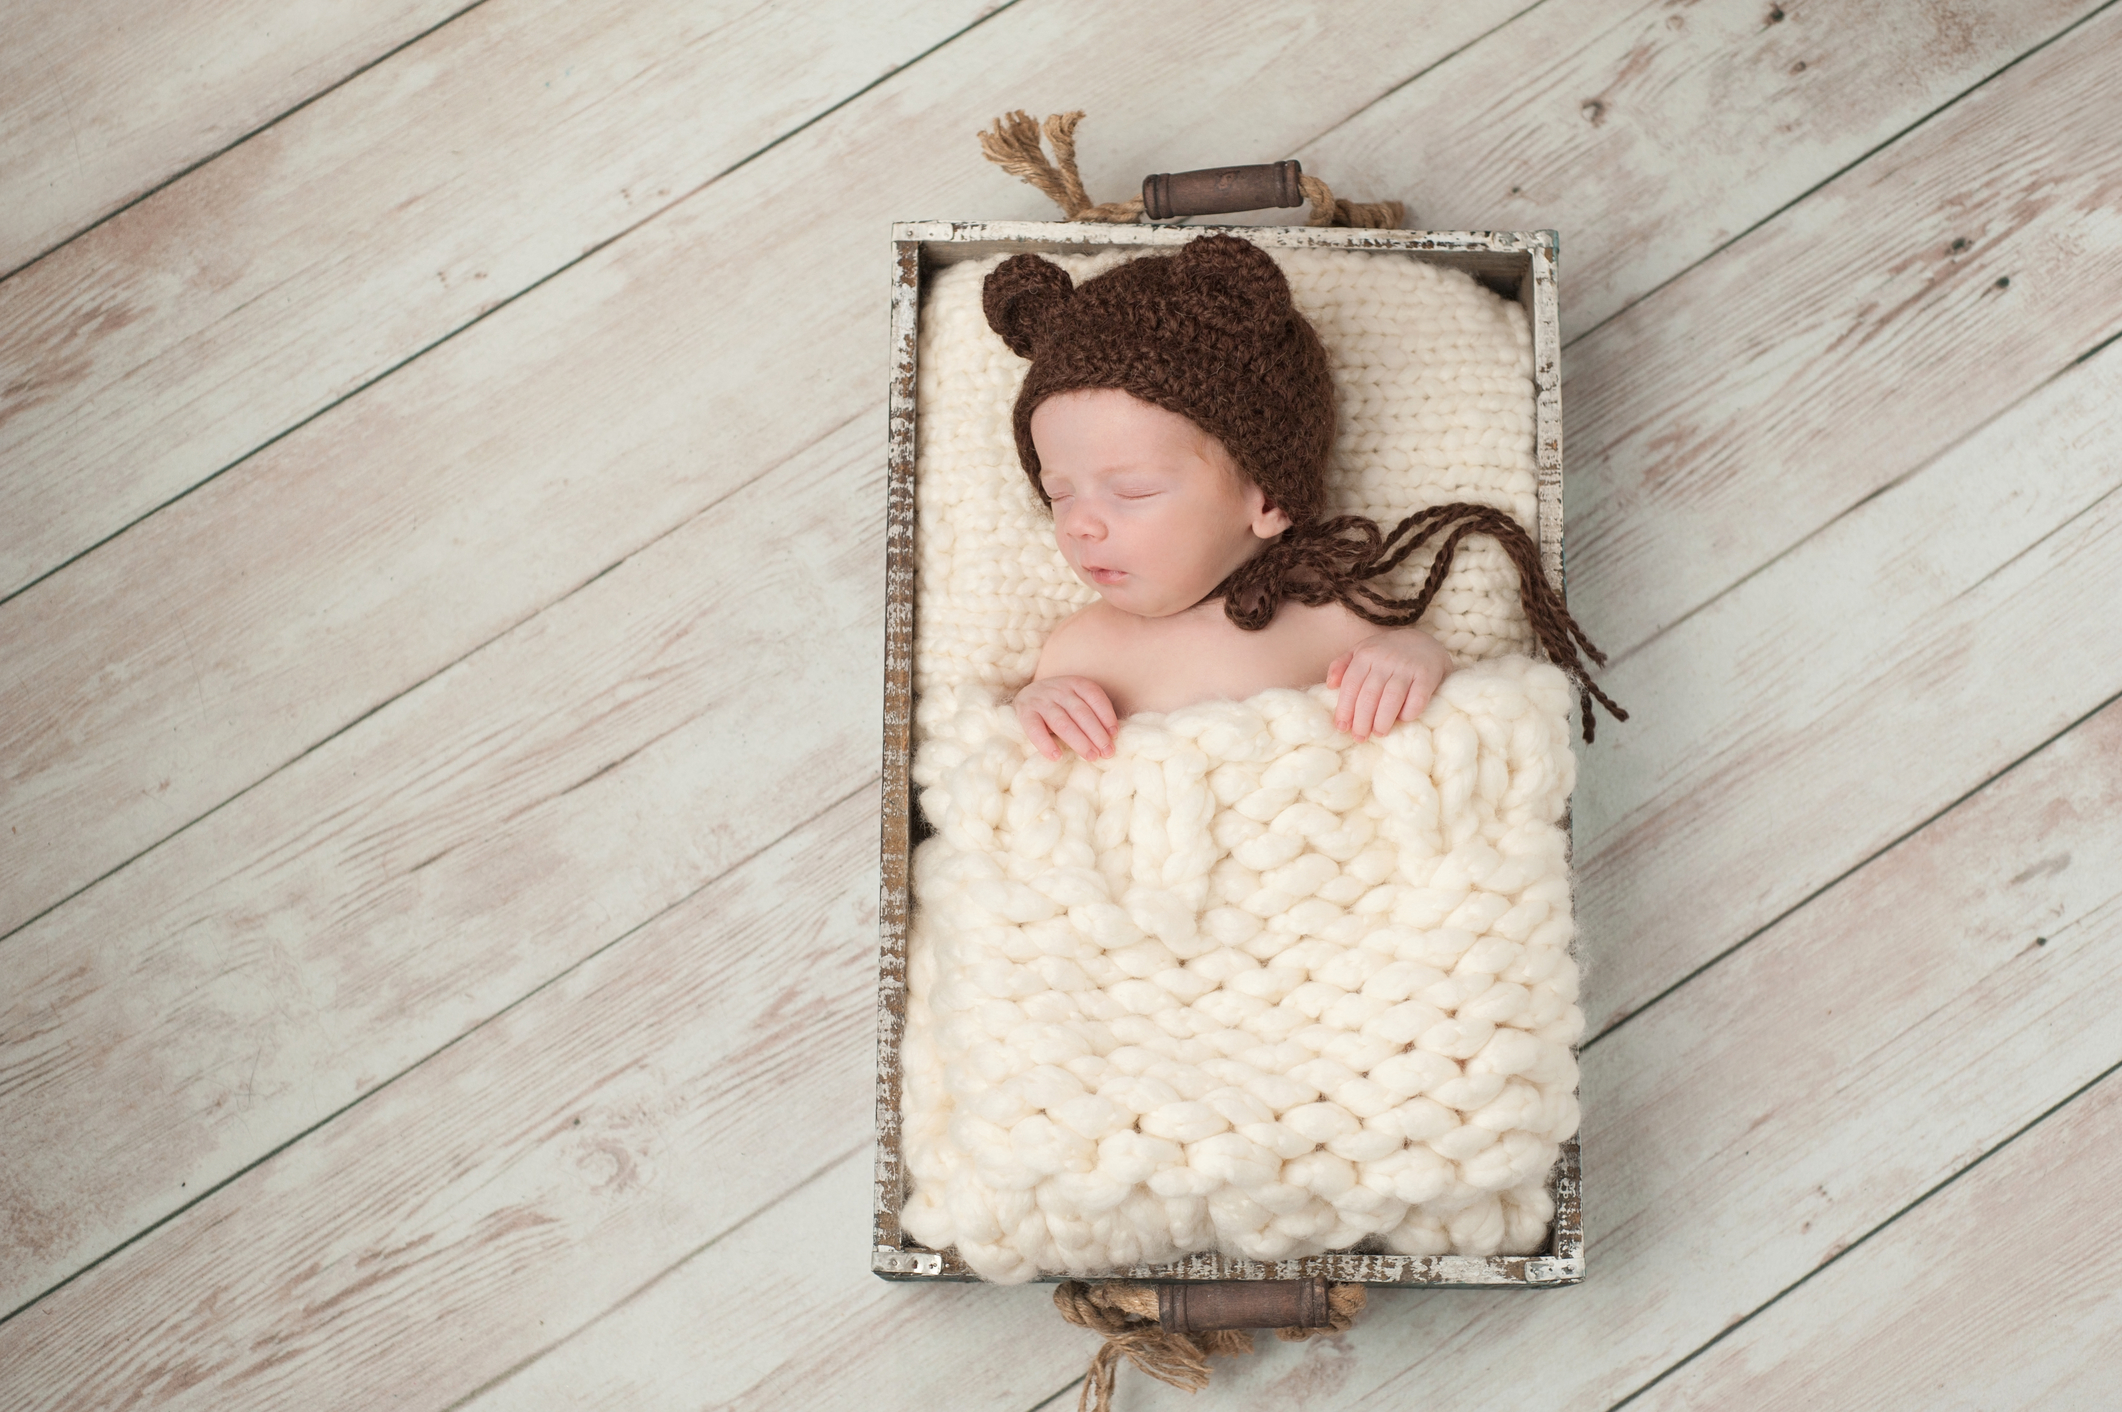 Where to find inspiration for the perfect baby name